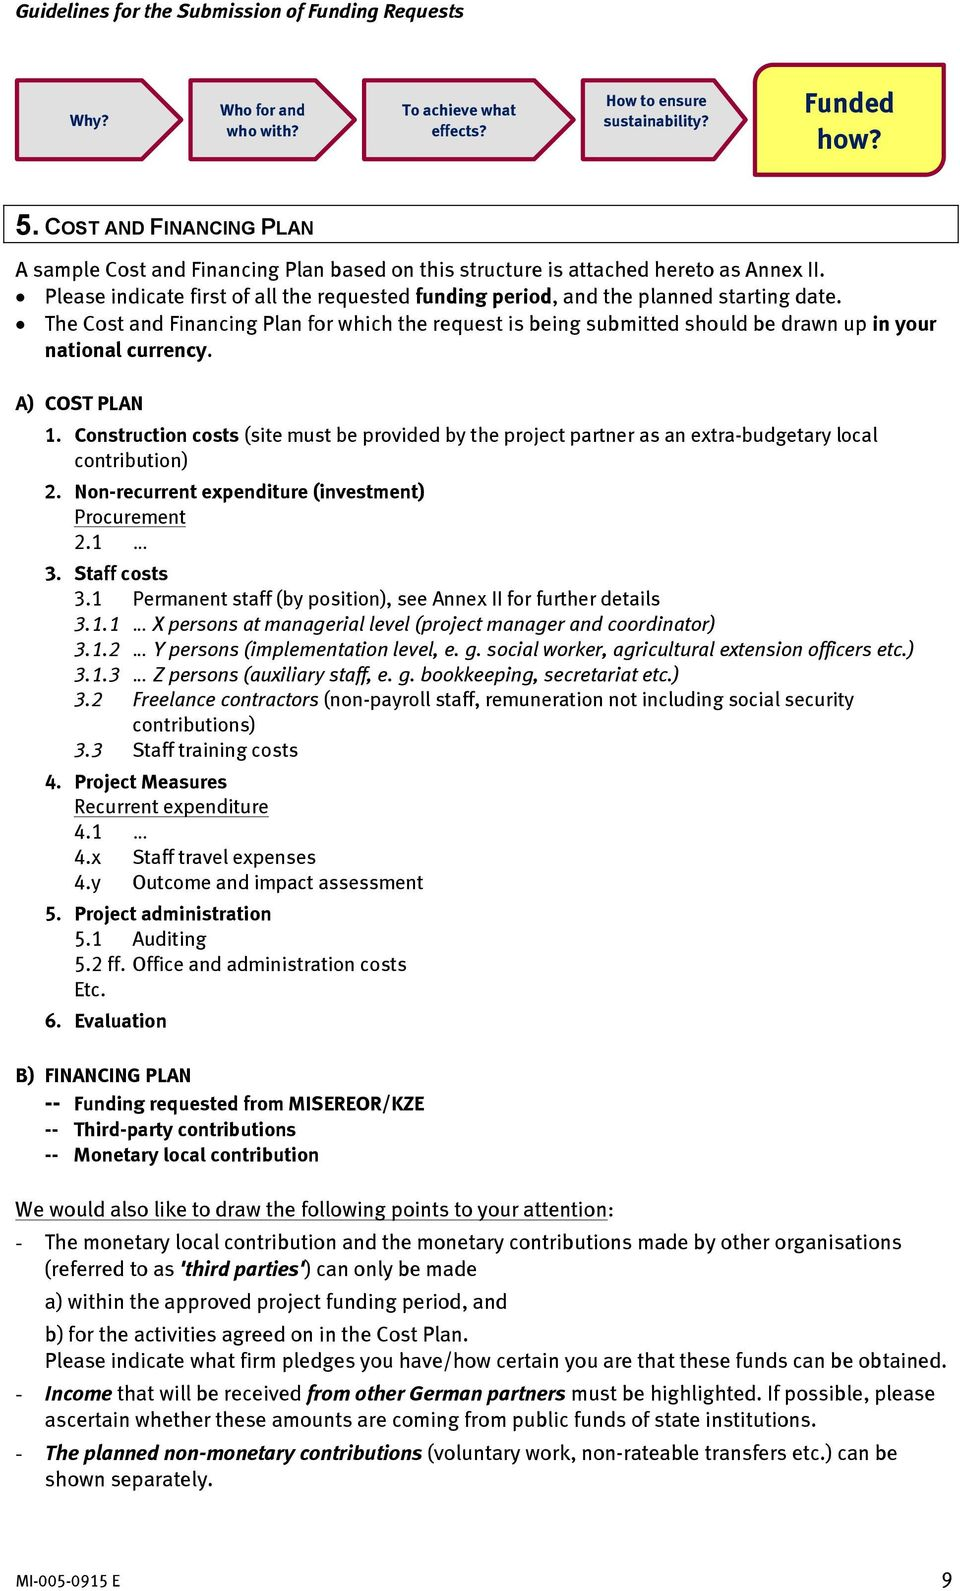 guidelines for the submission of funding requests pdf